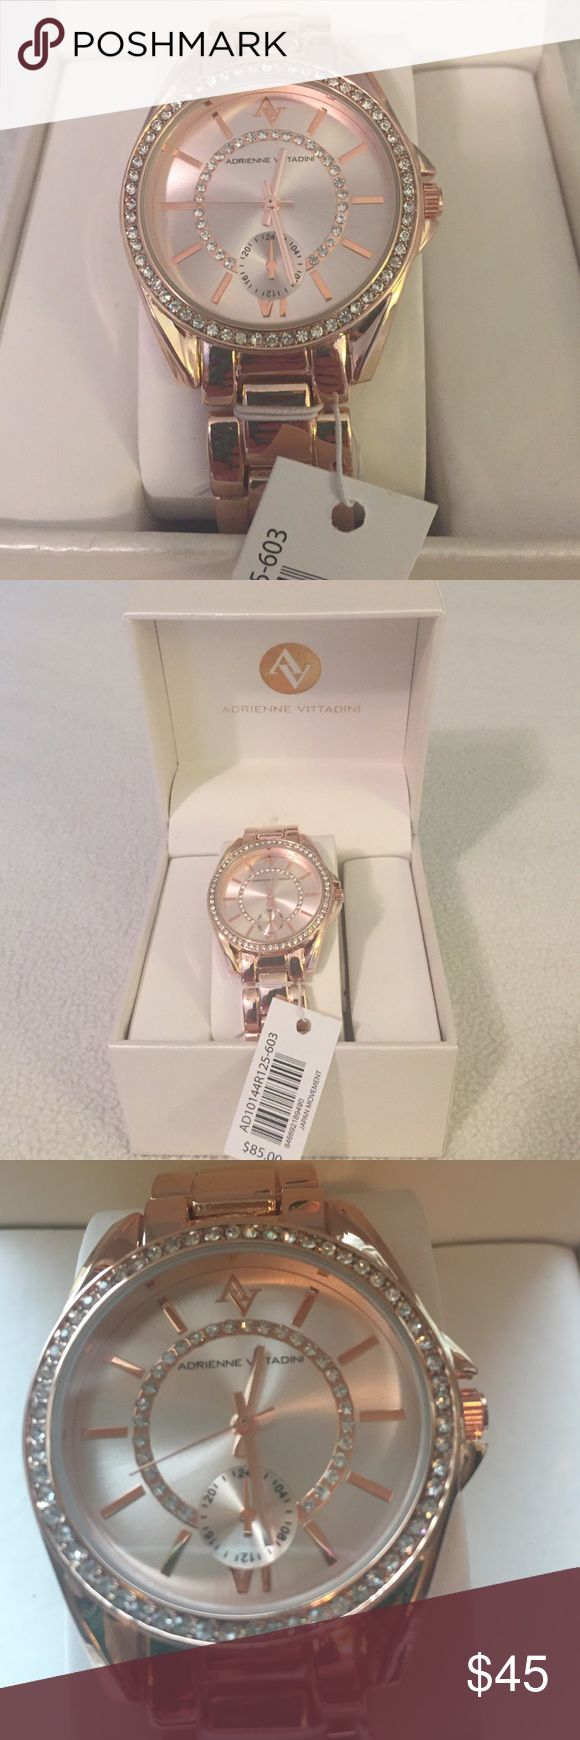 Gorgeous NWT Rose Gold Adrienne Vittadini Watch Absolutely stunning watch by Adrienne Vittadini. Beautiful crystal/rhinestone detailing surrounding the face of the watch as well as on the face of the watch. Links can be taken out to adjust to any wrist. Adrienne Vittadini Accessories Watches